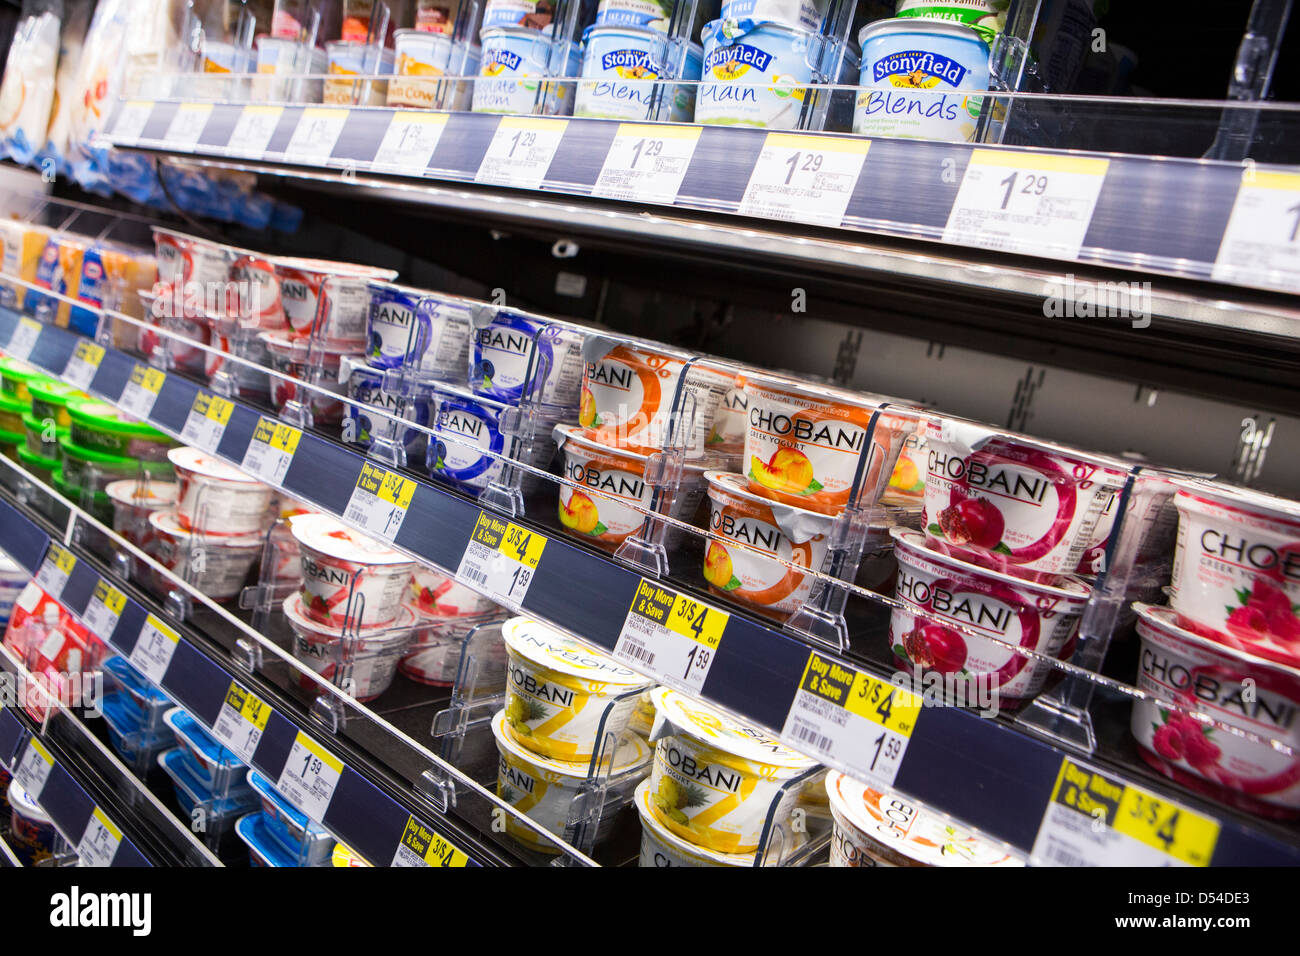 Yogurt and other dairy items on display at a Walgreens Flagship store. - Stock Image